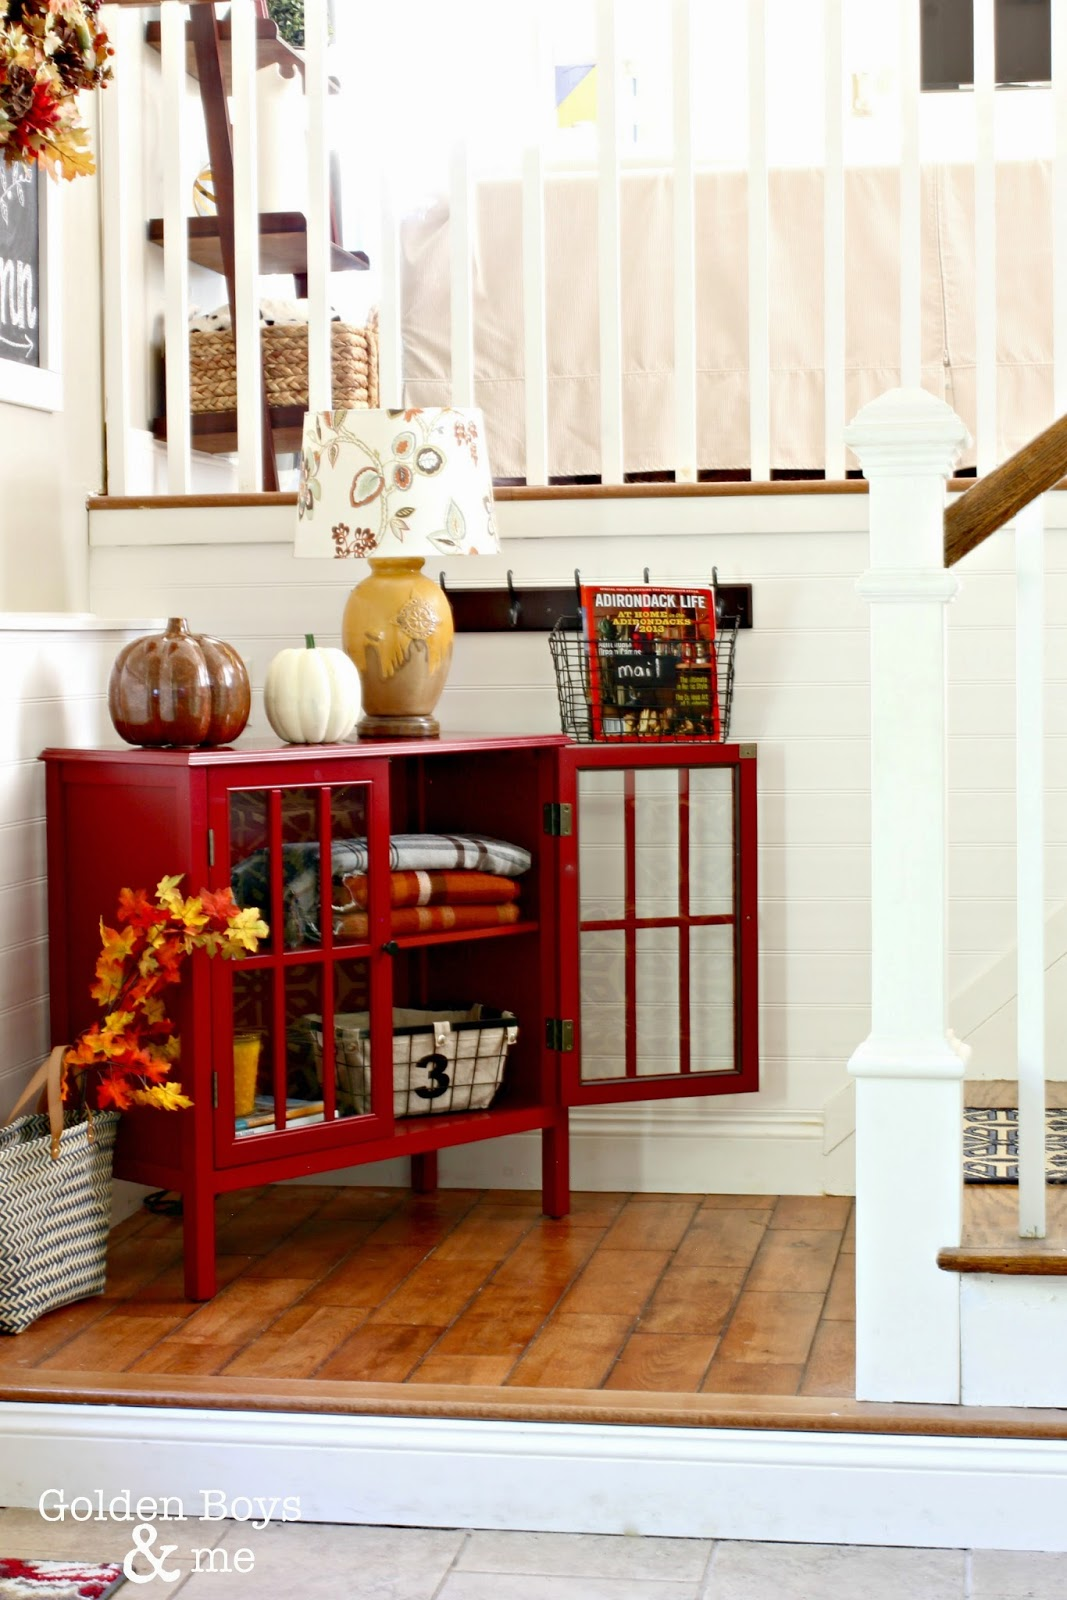 Target Threshold bookshelf with fall plaid blankets and pumpkins, part of autumn entryway-www.goldenboysandme.com